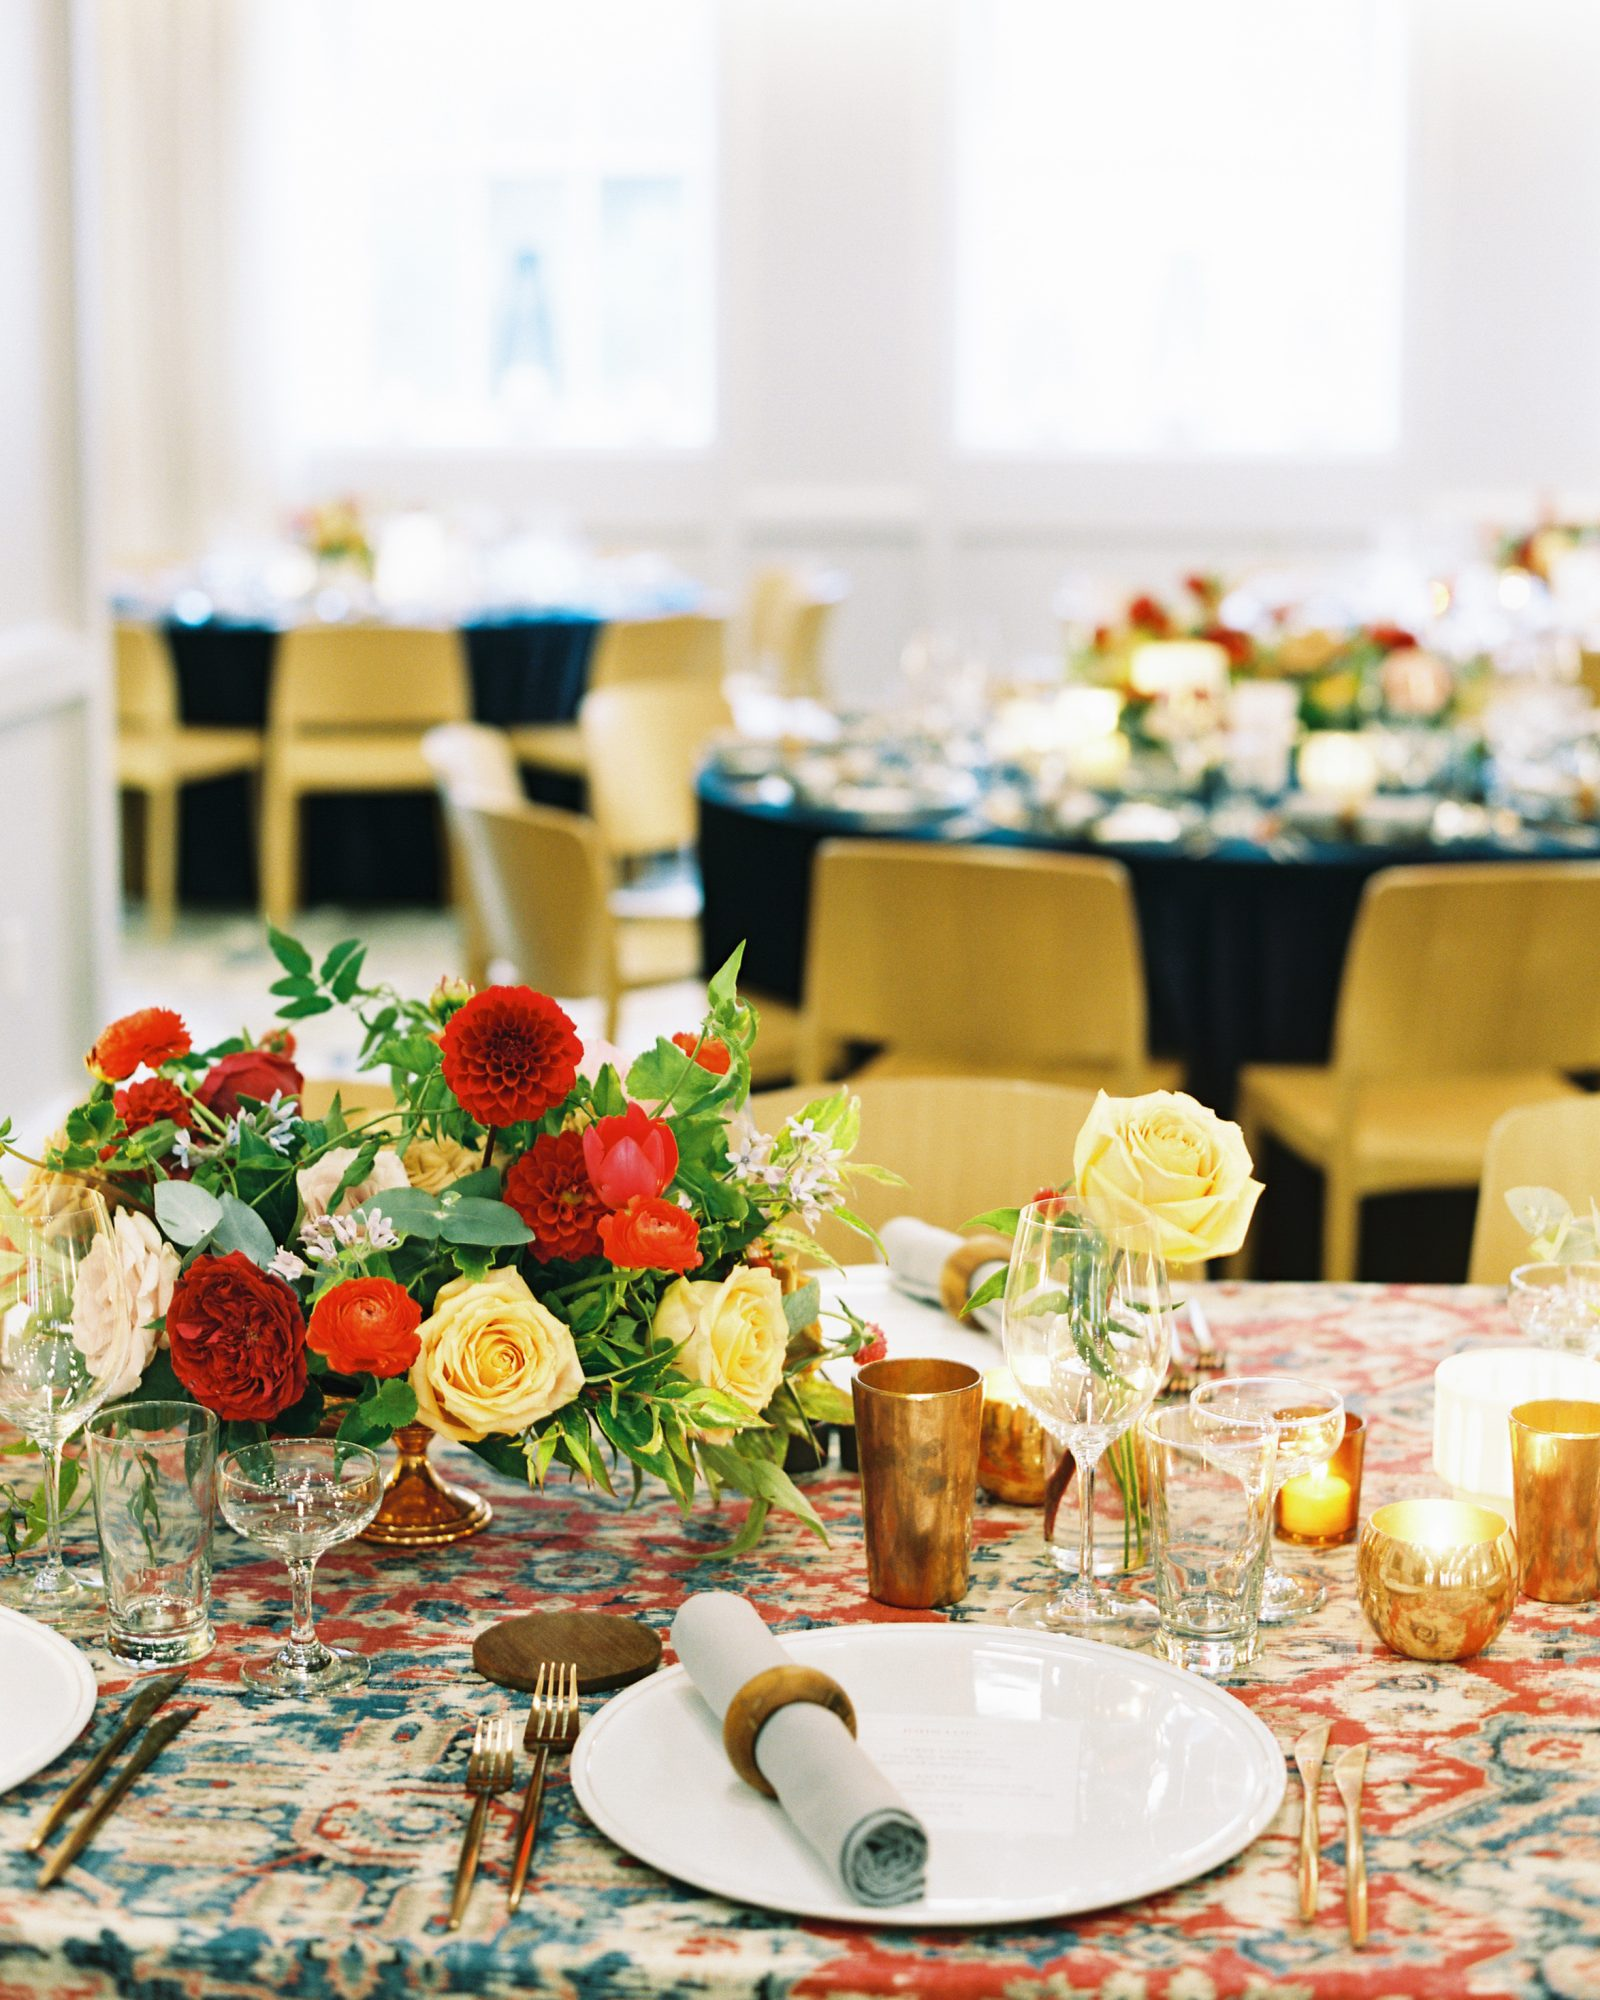 meaghan and david wedding reception tables statement linens